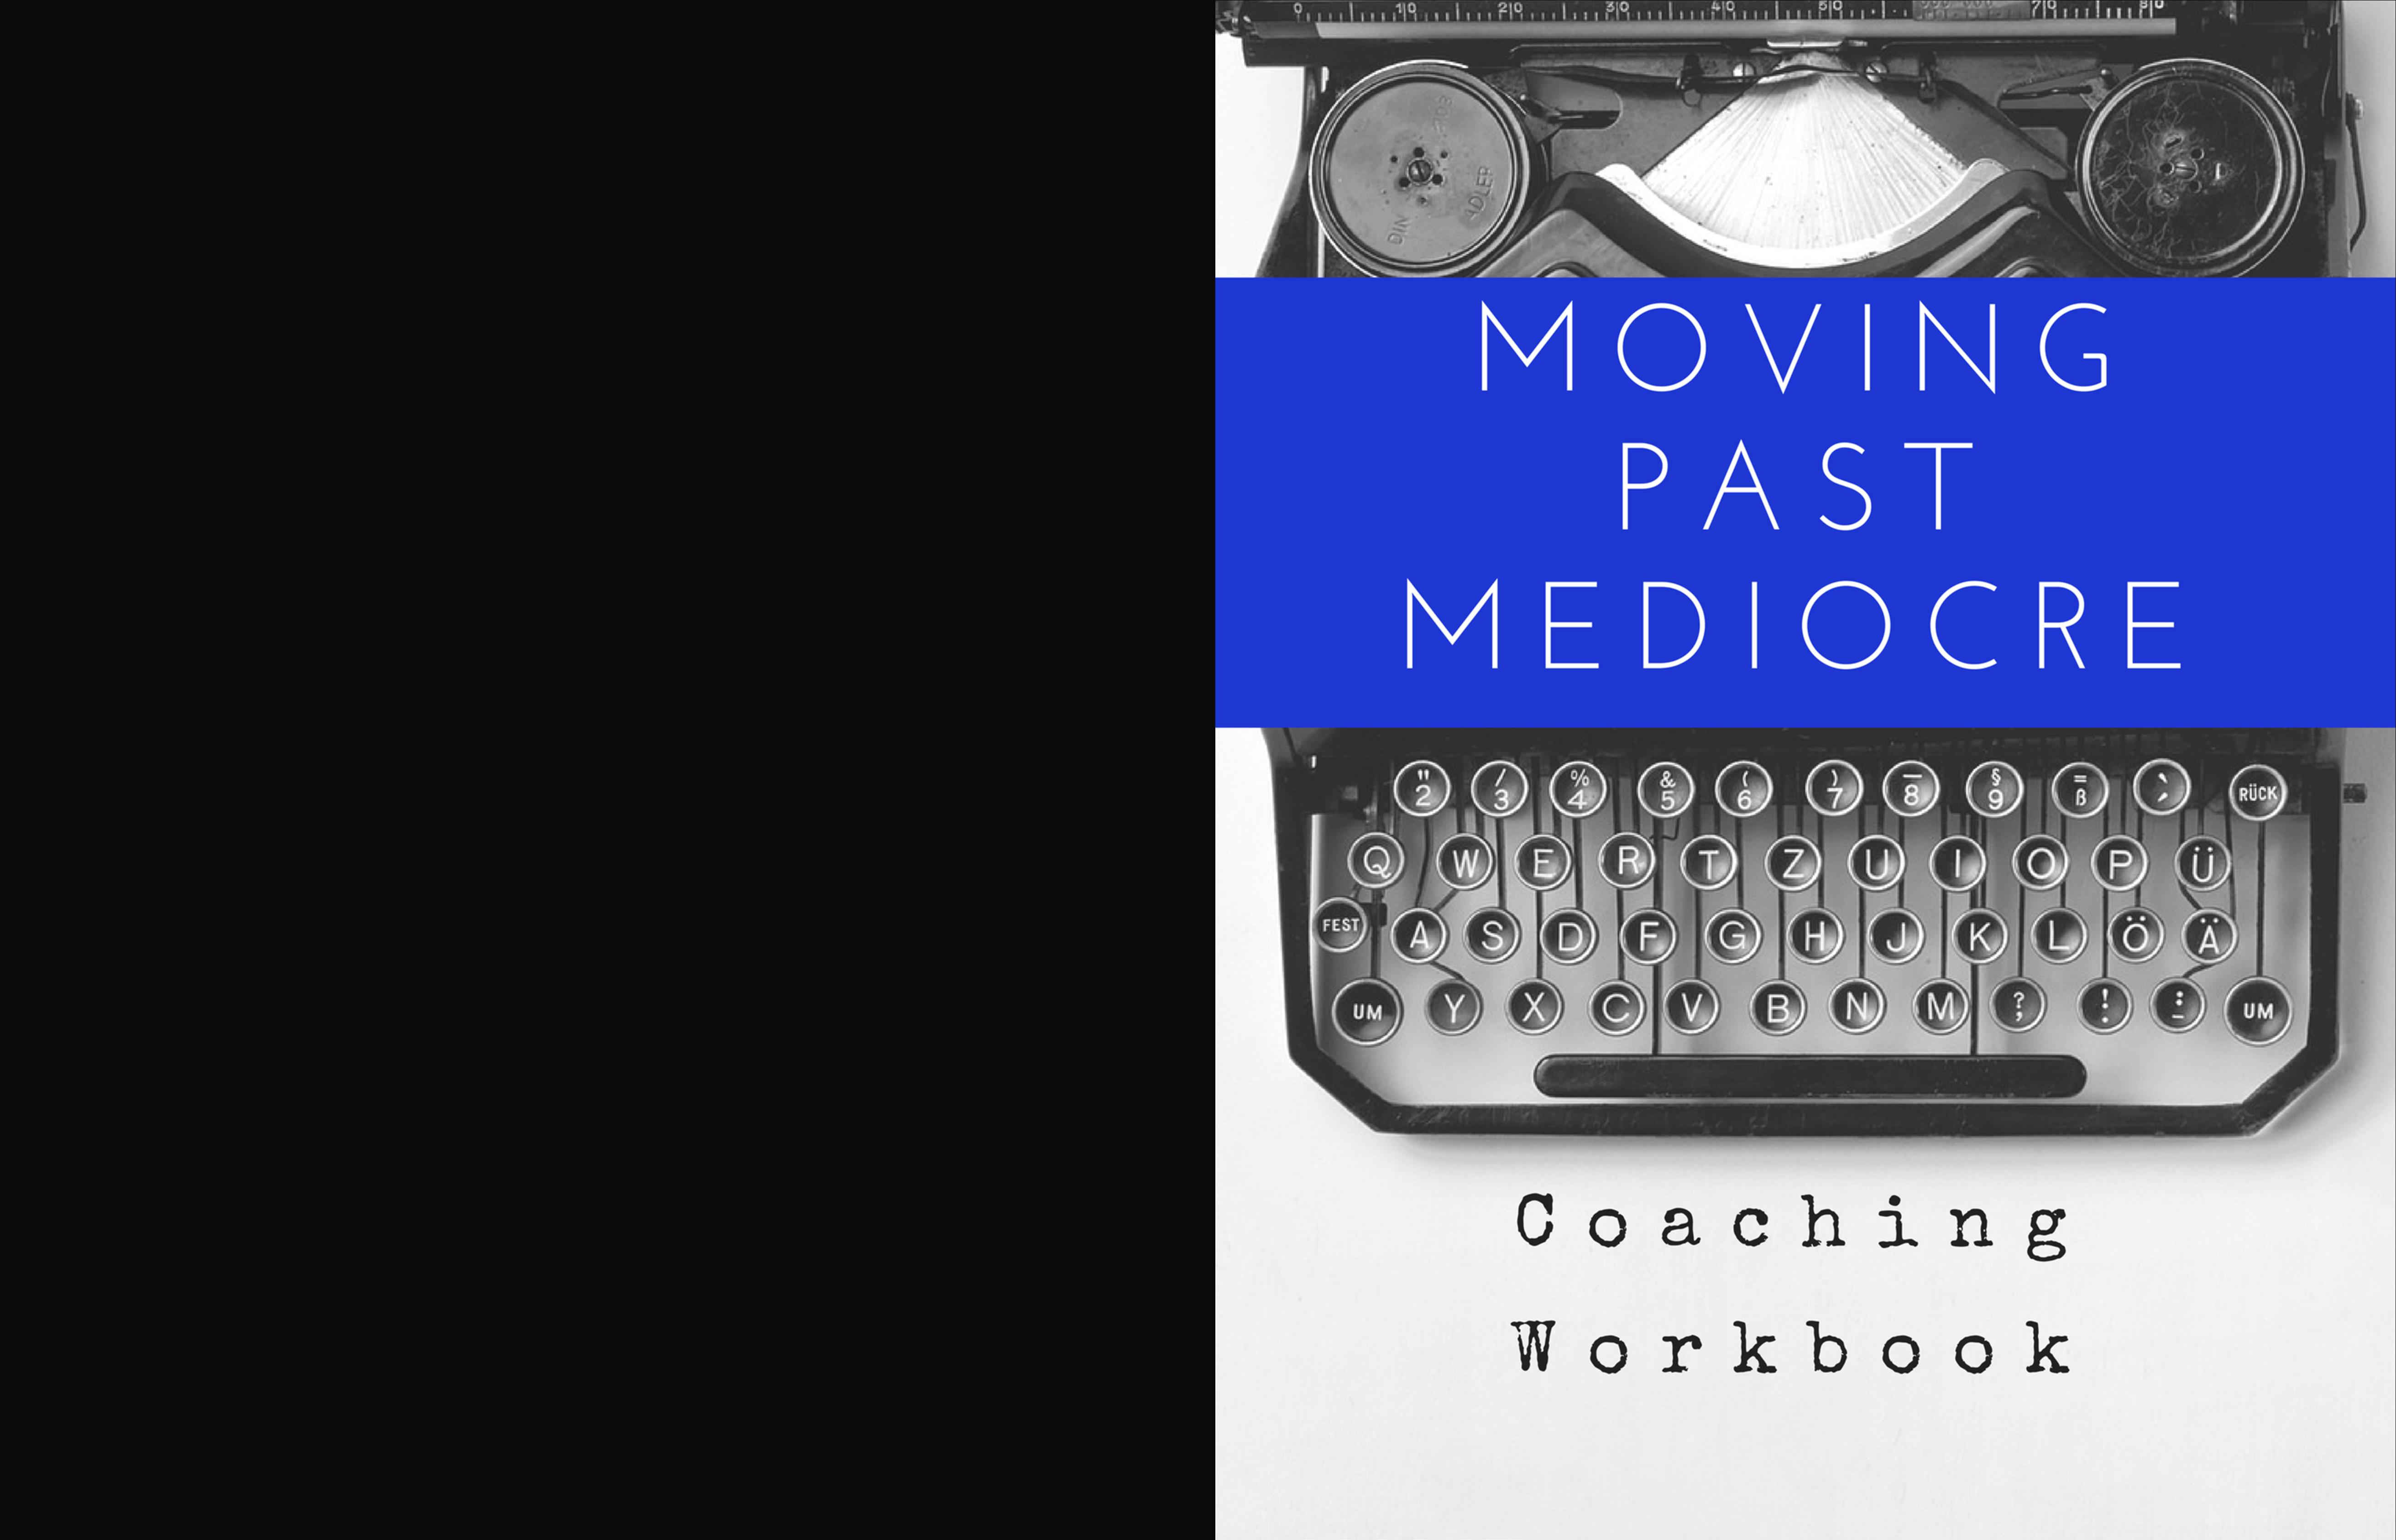 Moving Past Mediocre Coaching Workbook cover image